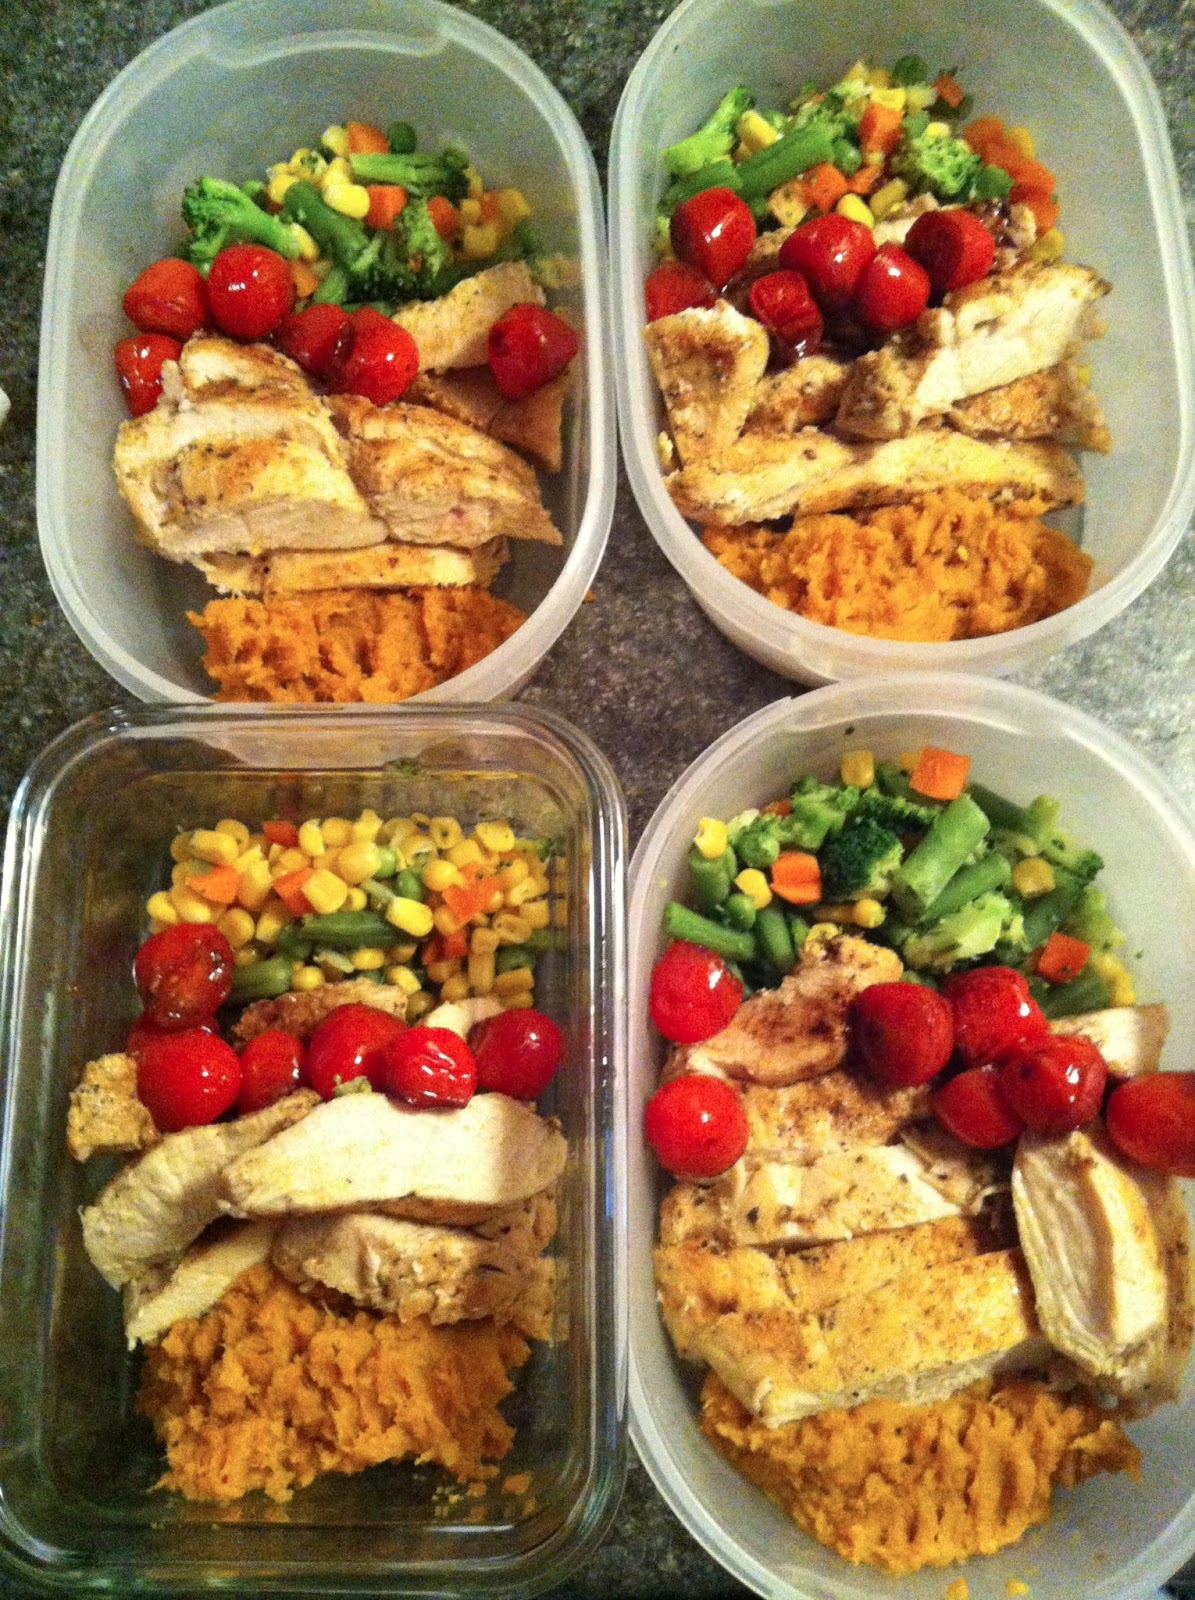 prepped meals | Sunshine Wellness Institute - Nutrition ...